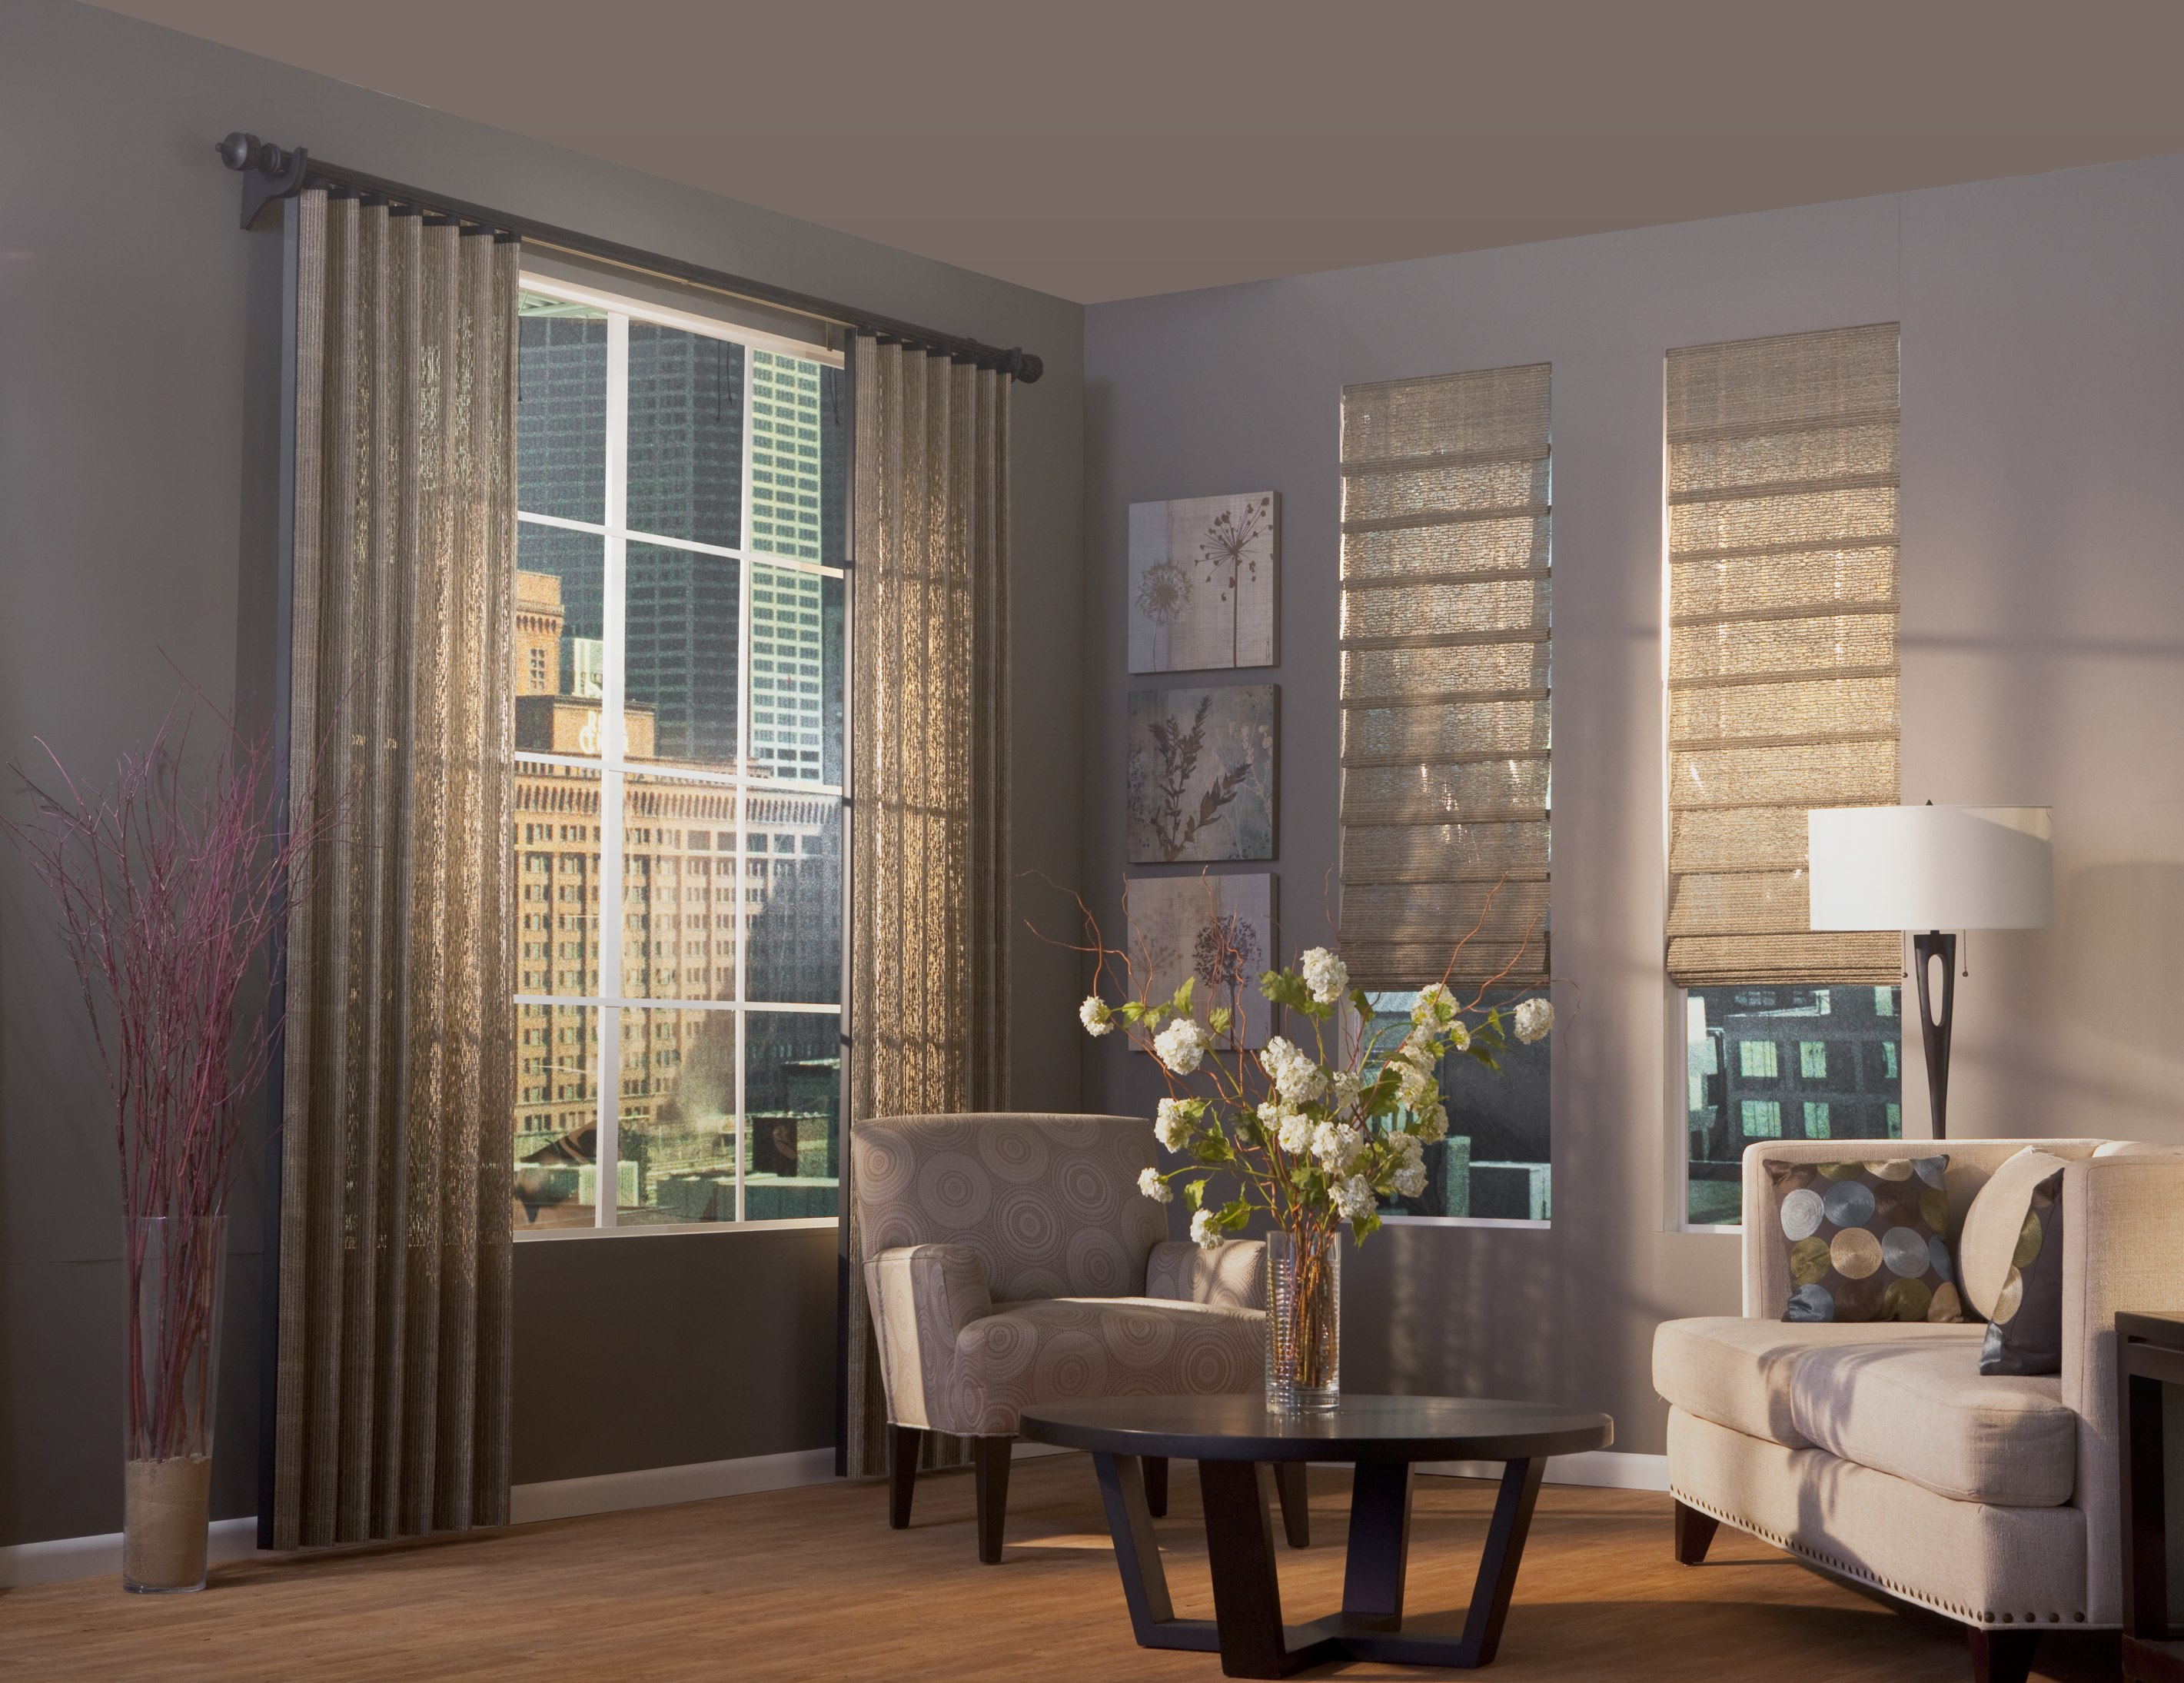 Natural Woven Shades blend the look of Vertical Blinds Drapes